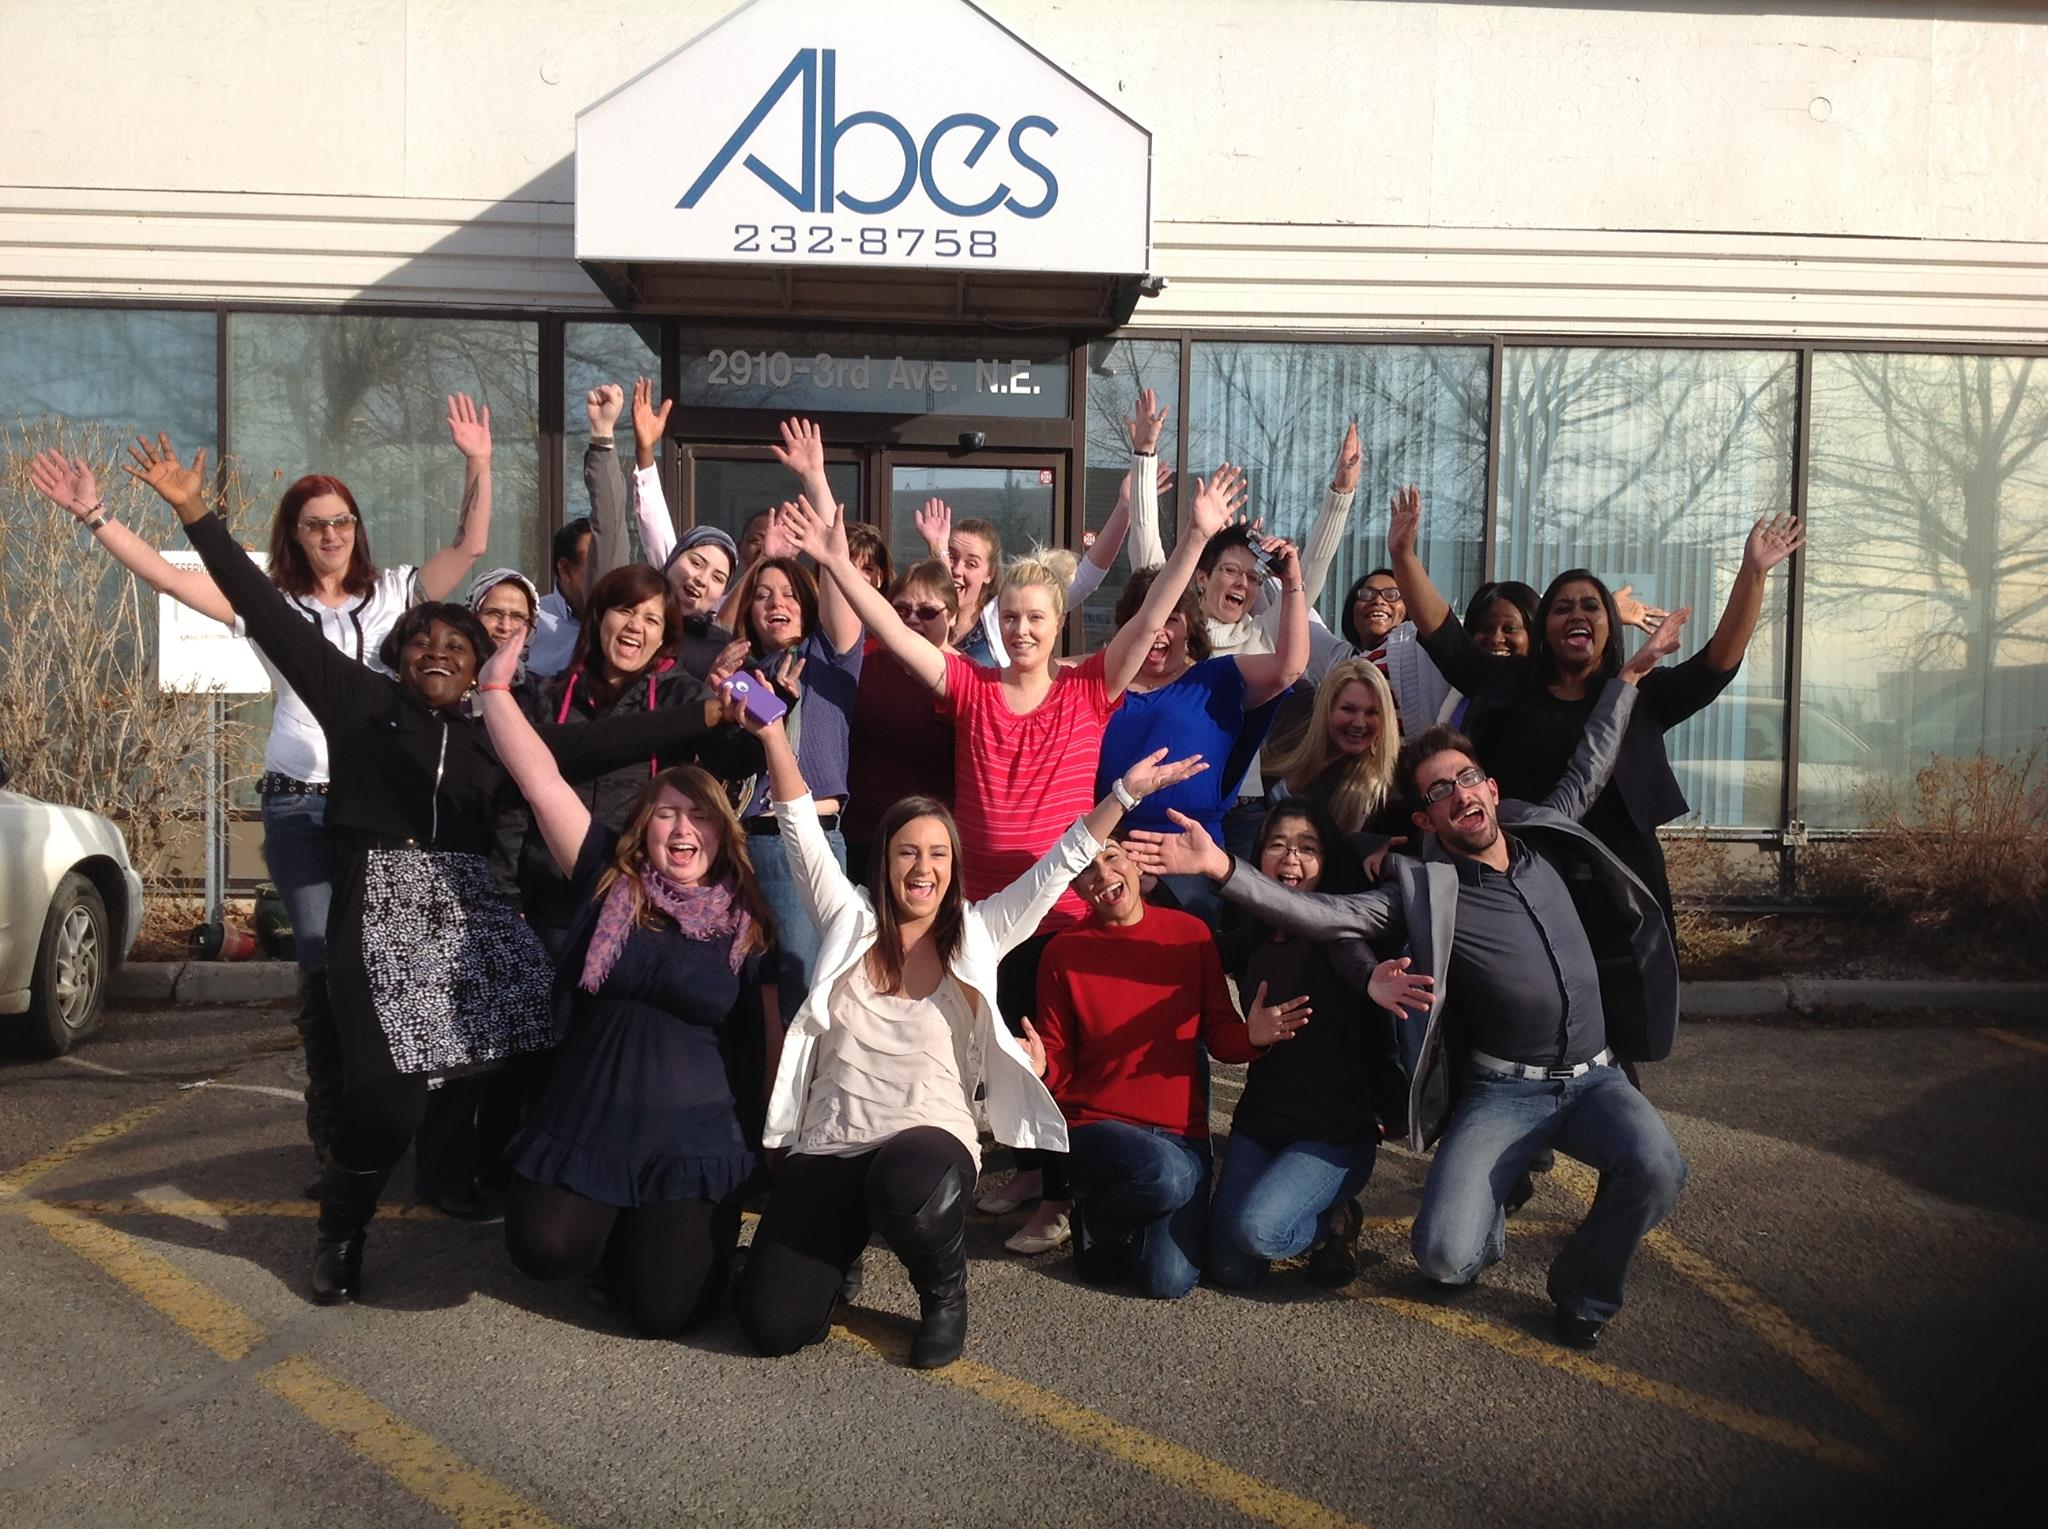 ABES College – Alberta Business Education Services